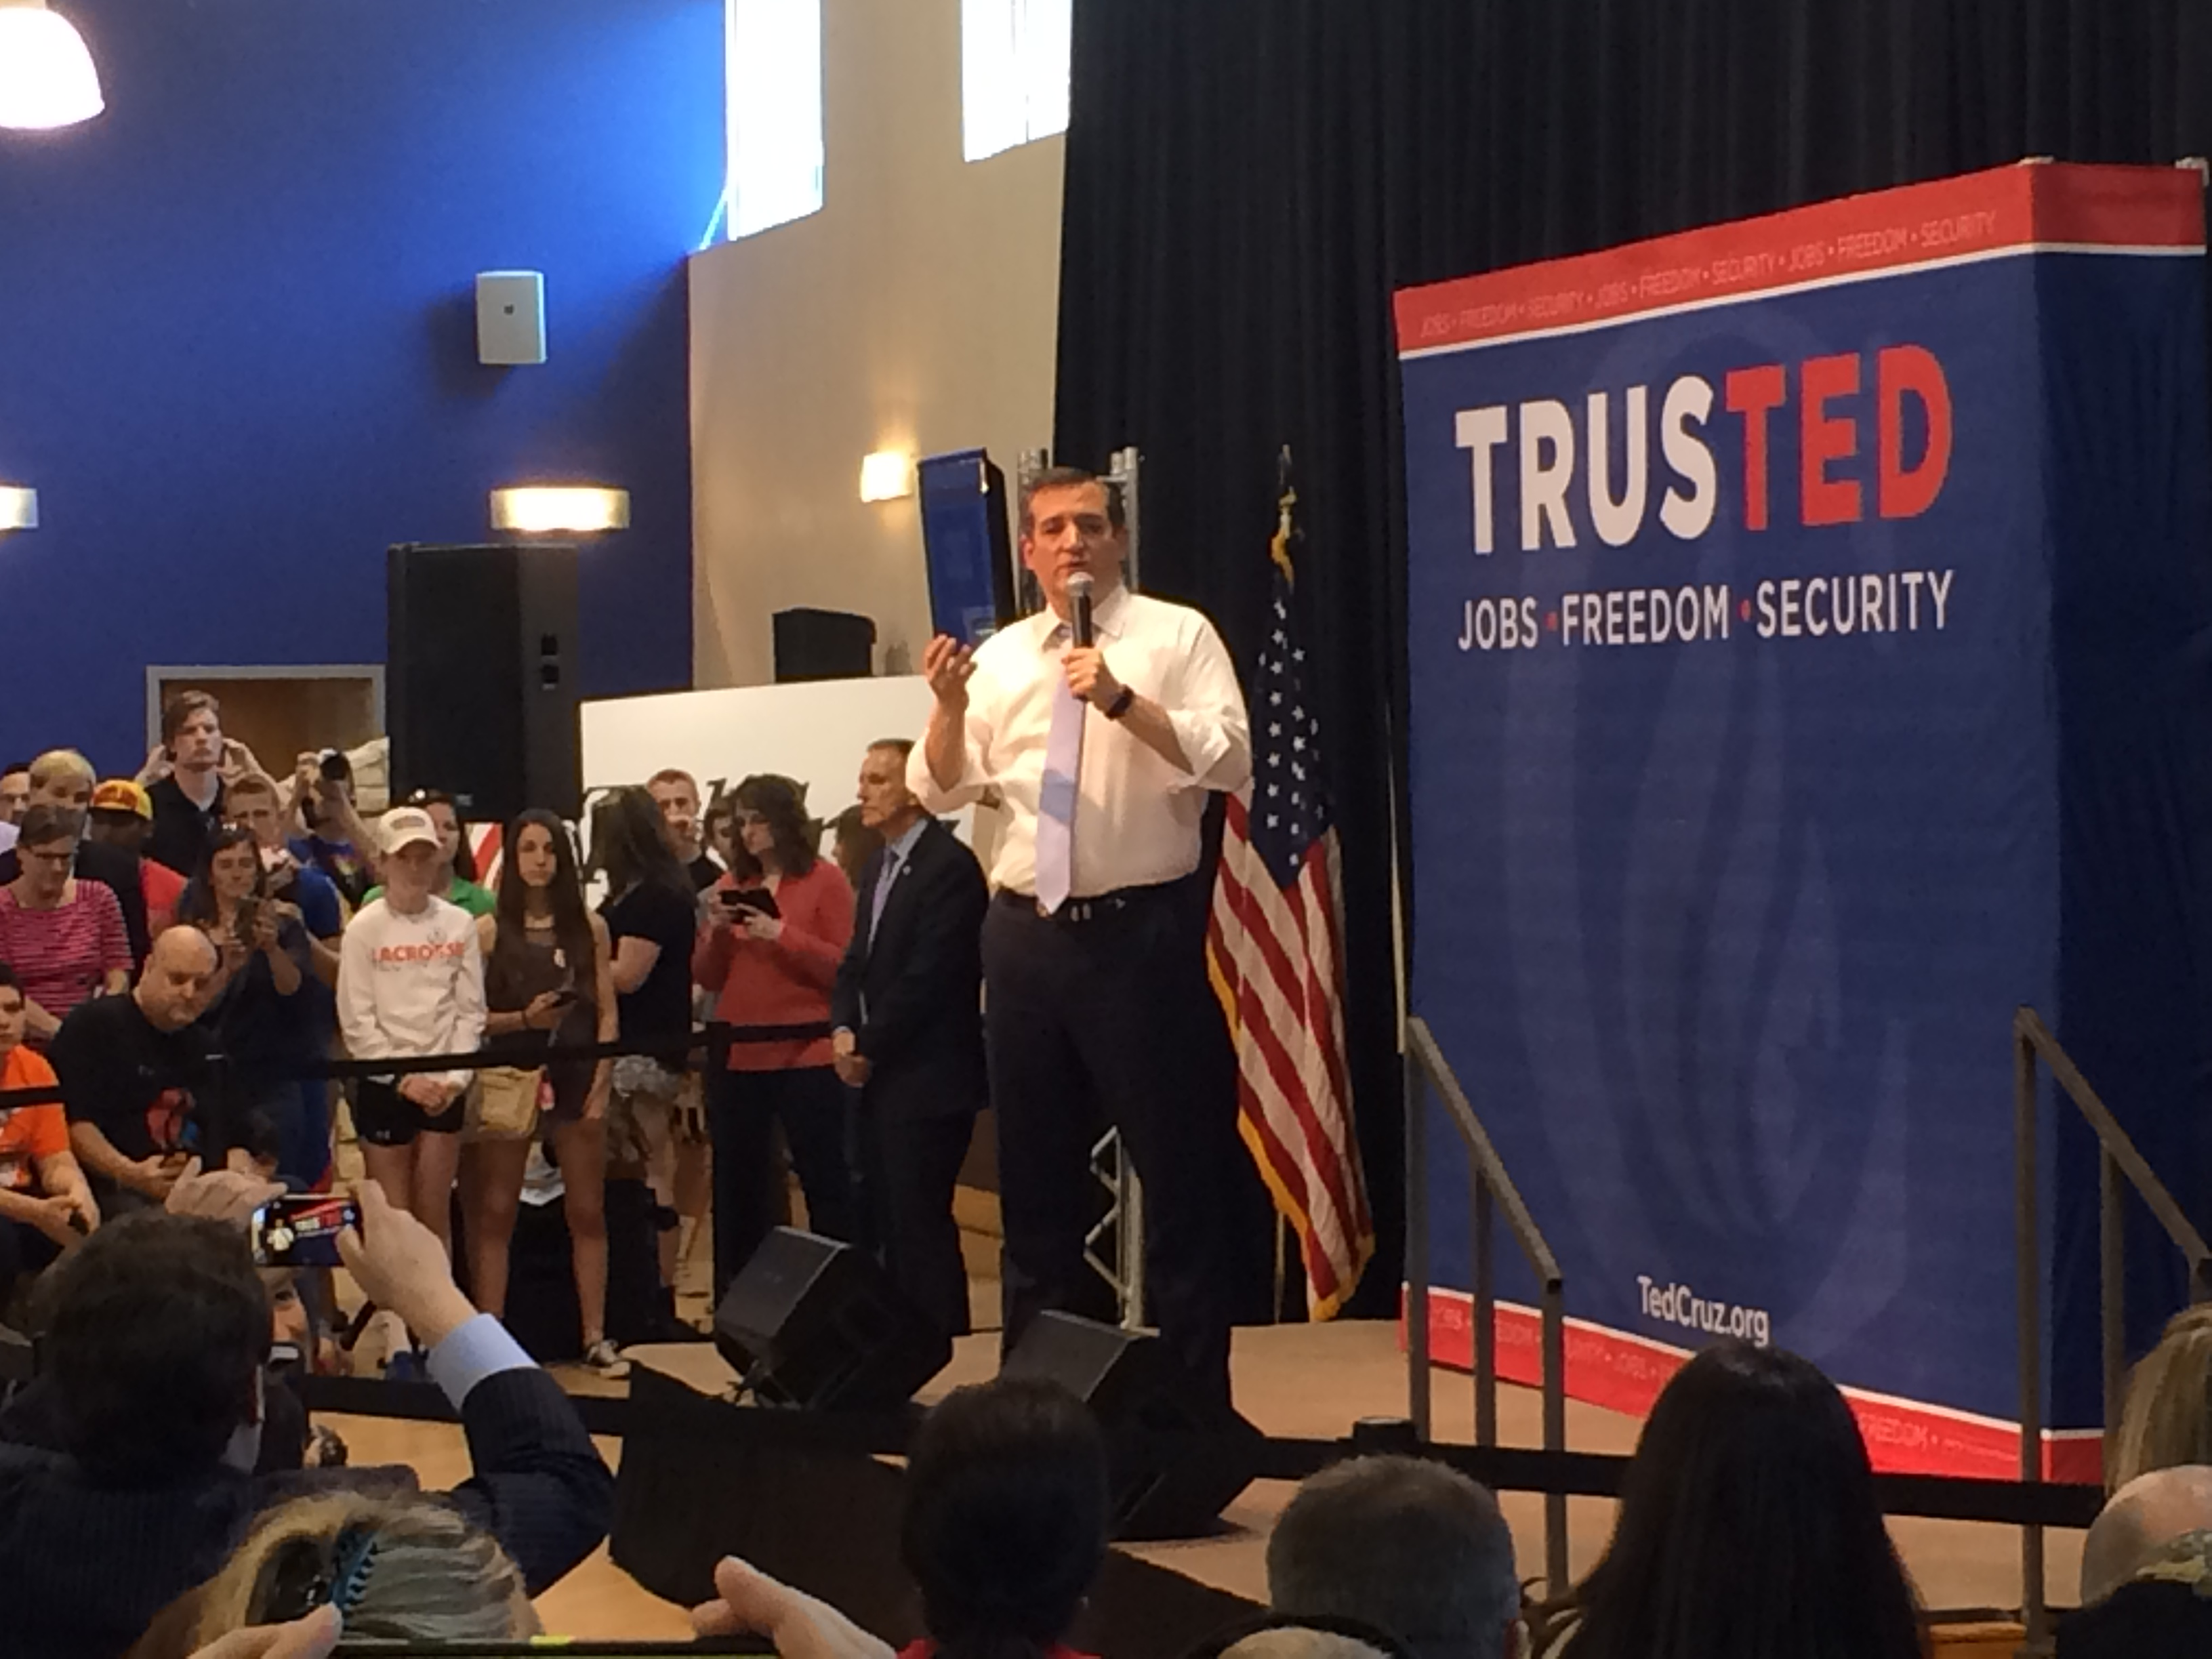 Maryland will have 'outsized voice' in GOP nomination, says Cruz